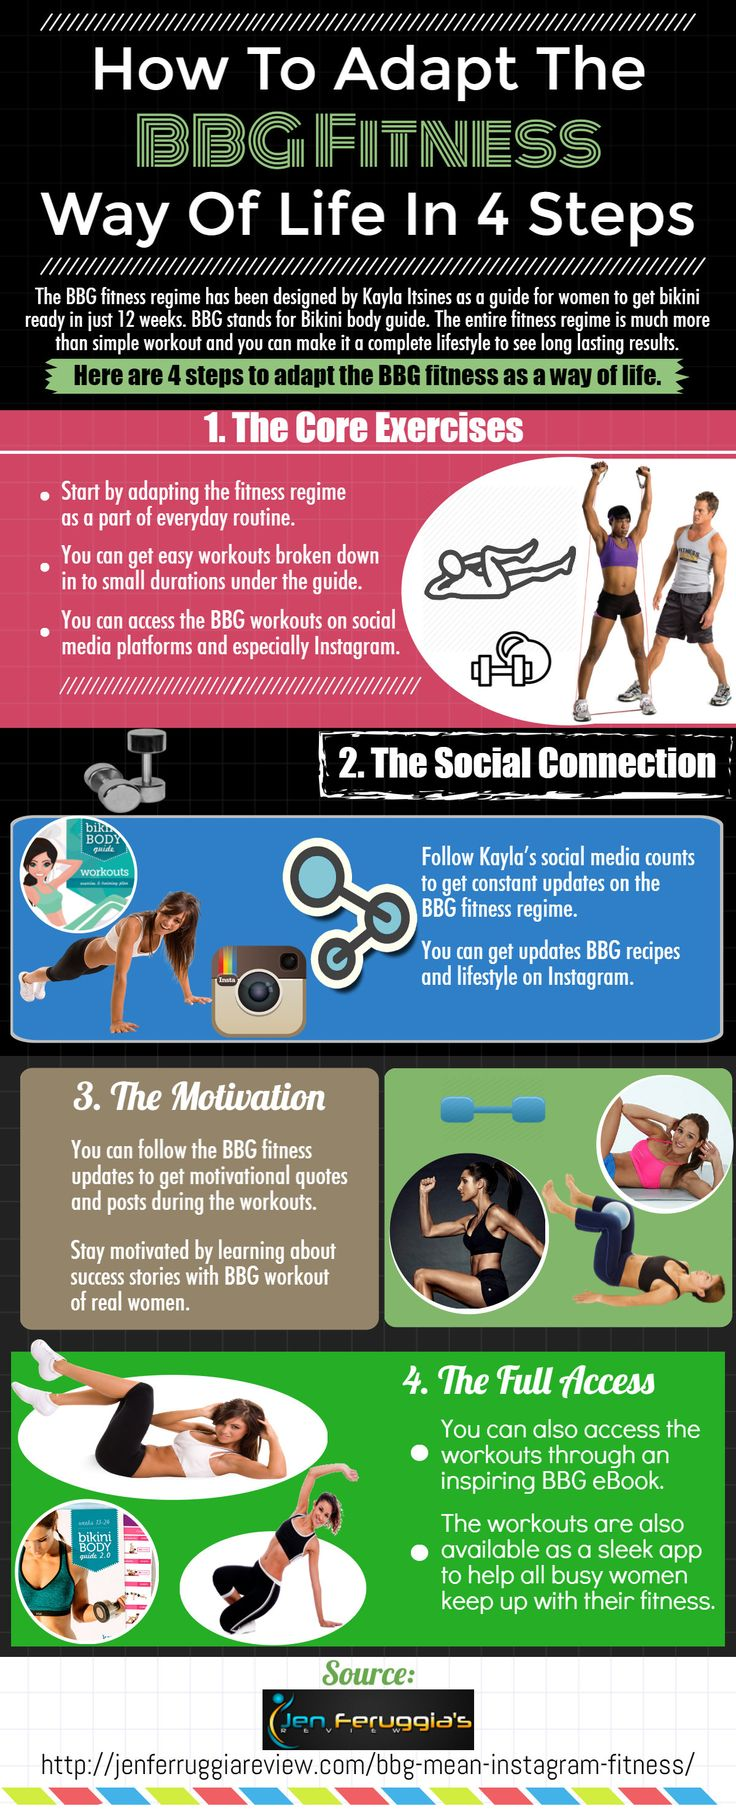 You head to the gym every day and workout for hours, yet you don't see any results. If you are doing all the right things, but still struggling with your fitness goals, here are some sabotaging habits that might be preventing it from happening. For More Information about BBG Fitness, please check http://jenferruggiareview.com/bbg-mean-instagram-fitness